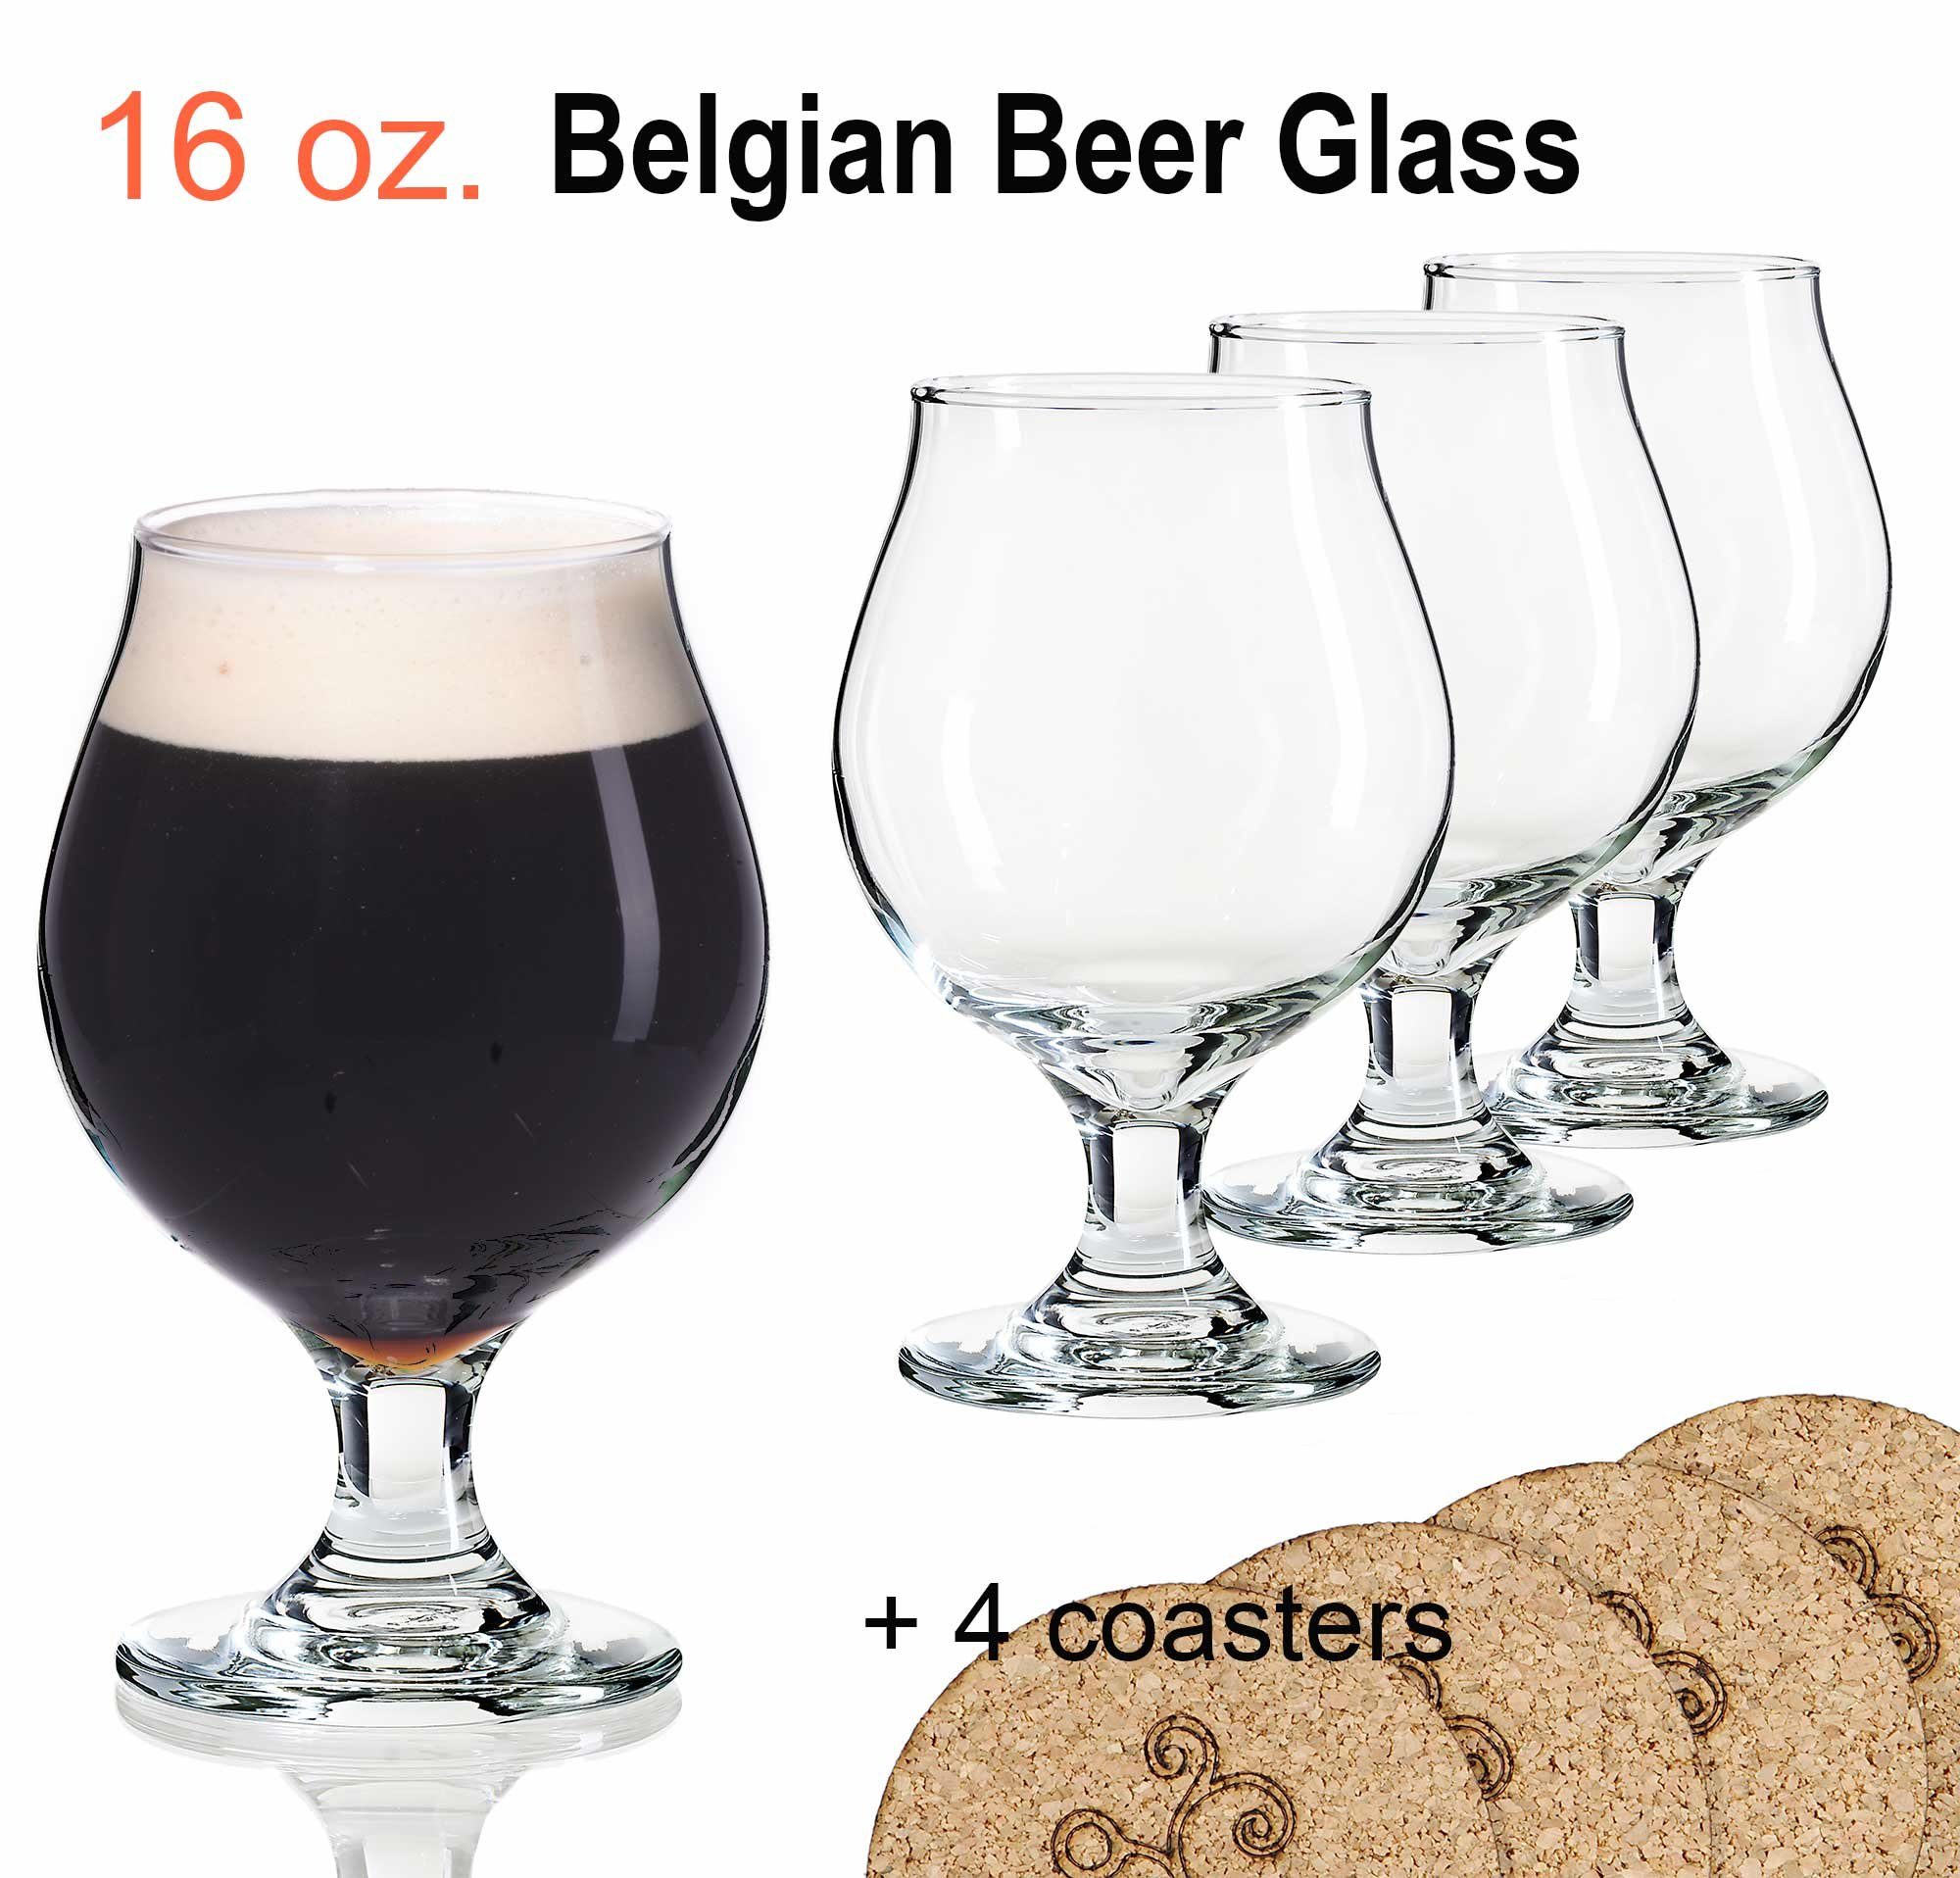 dc6993fec62 Get Quotations · Libbey Beer Glass Belgian Style Stemmed Tulip - 16 oz  Lambic Beer Glasses - set of